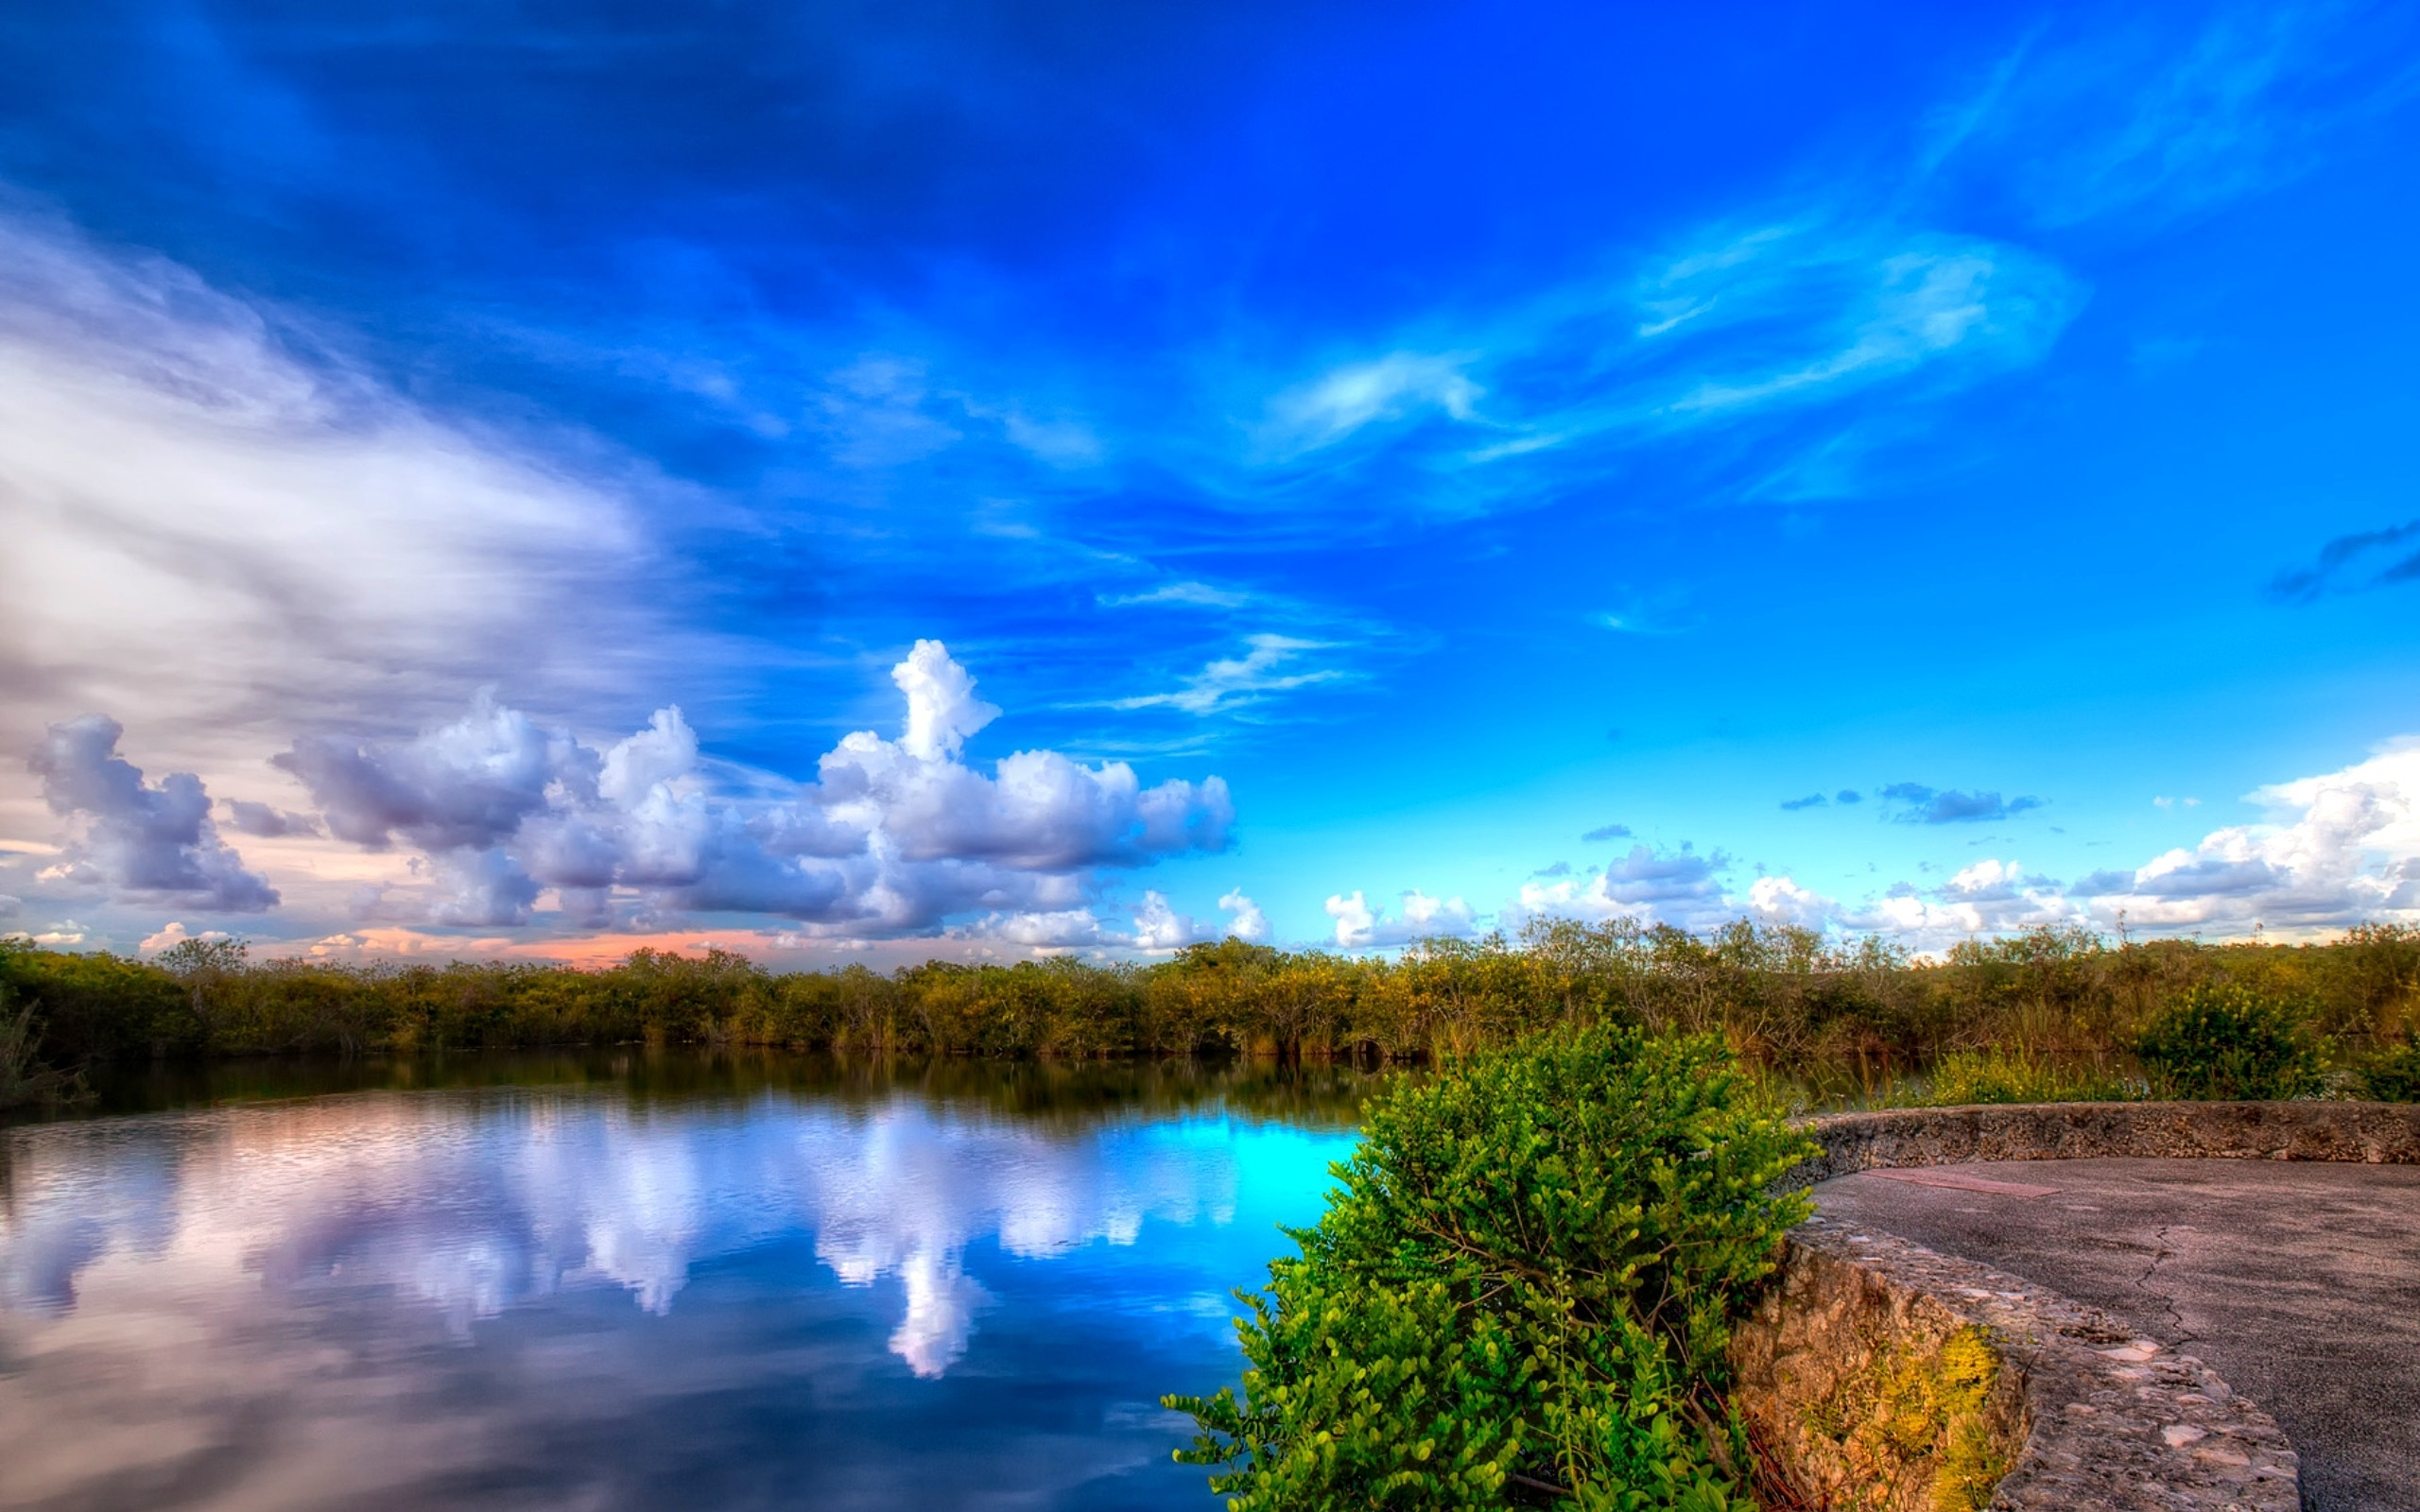 Clouds Sky Plants Lake View wallpapers | Clouds Sky Plants ...